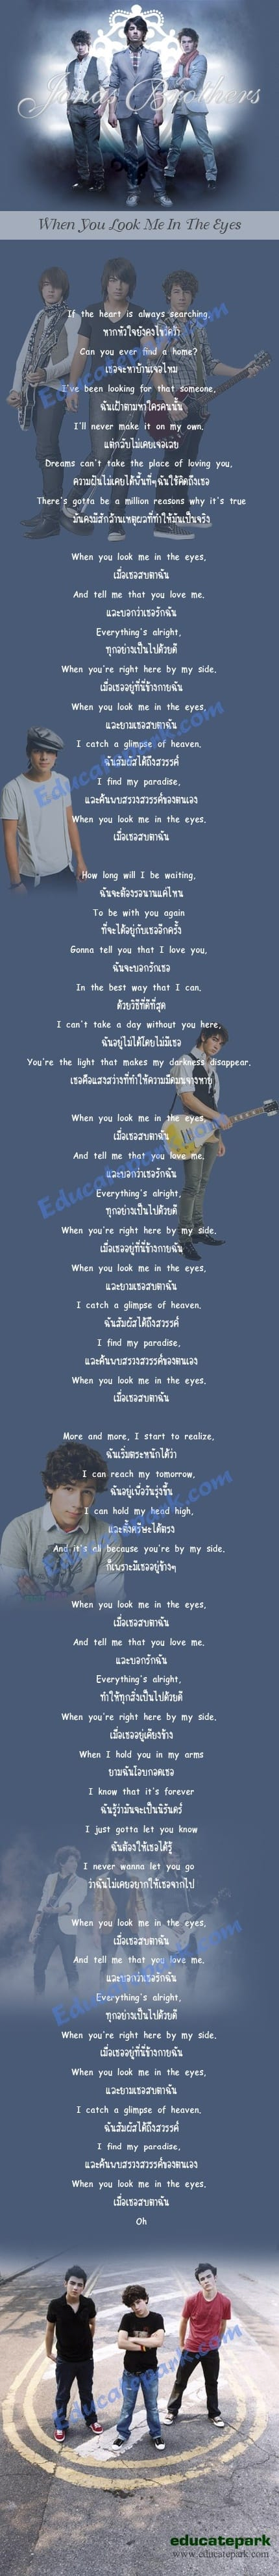 แปลเพลง When You Look Me In The Eyes - Jonas Brothers